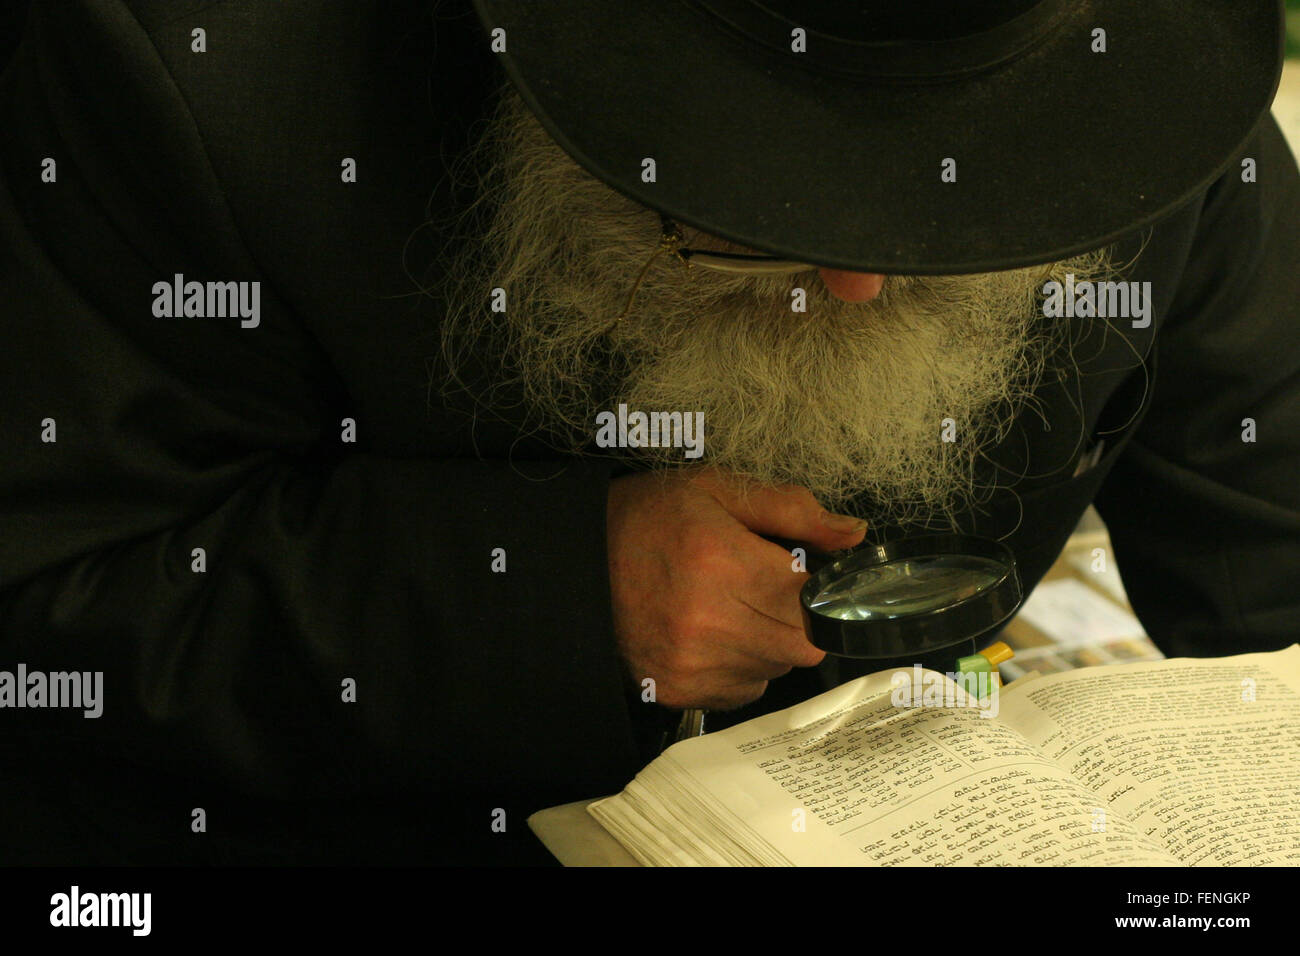 Detective Reading Book Through Magnifying Glass - Stock Image